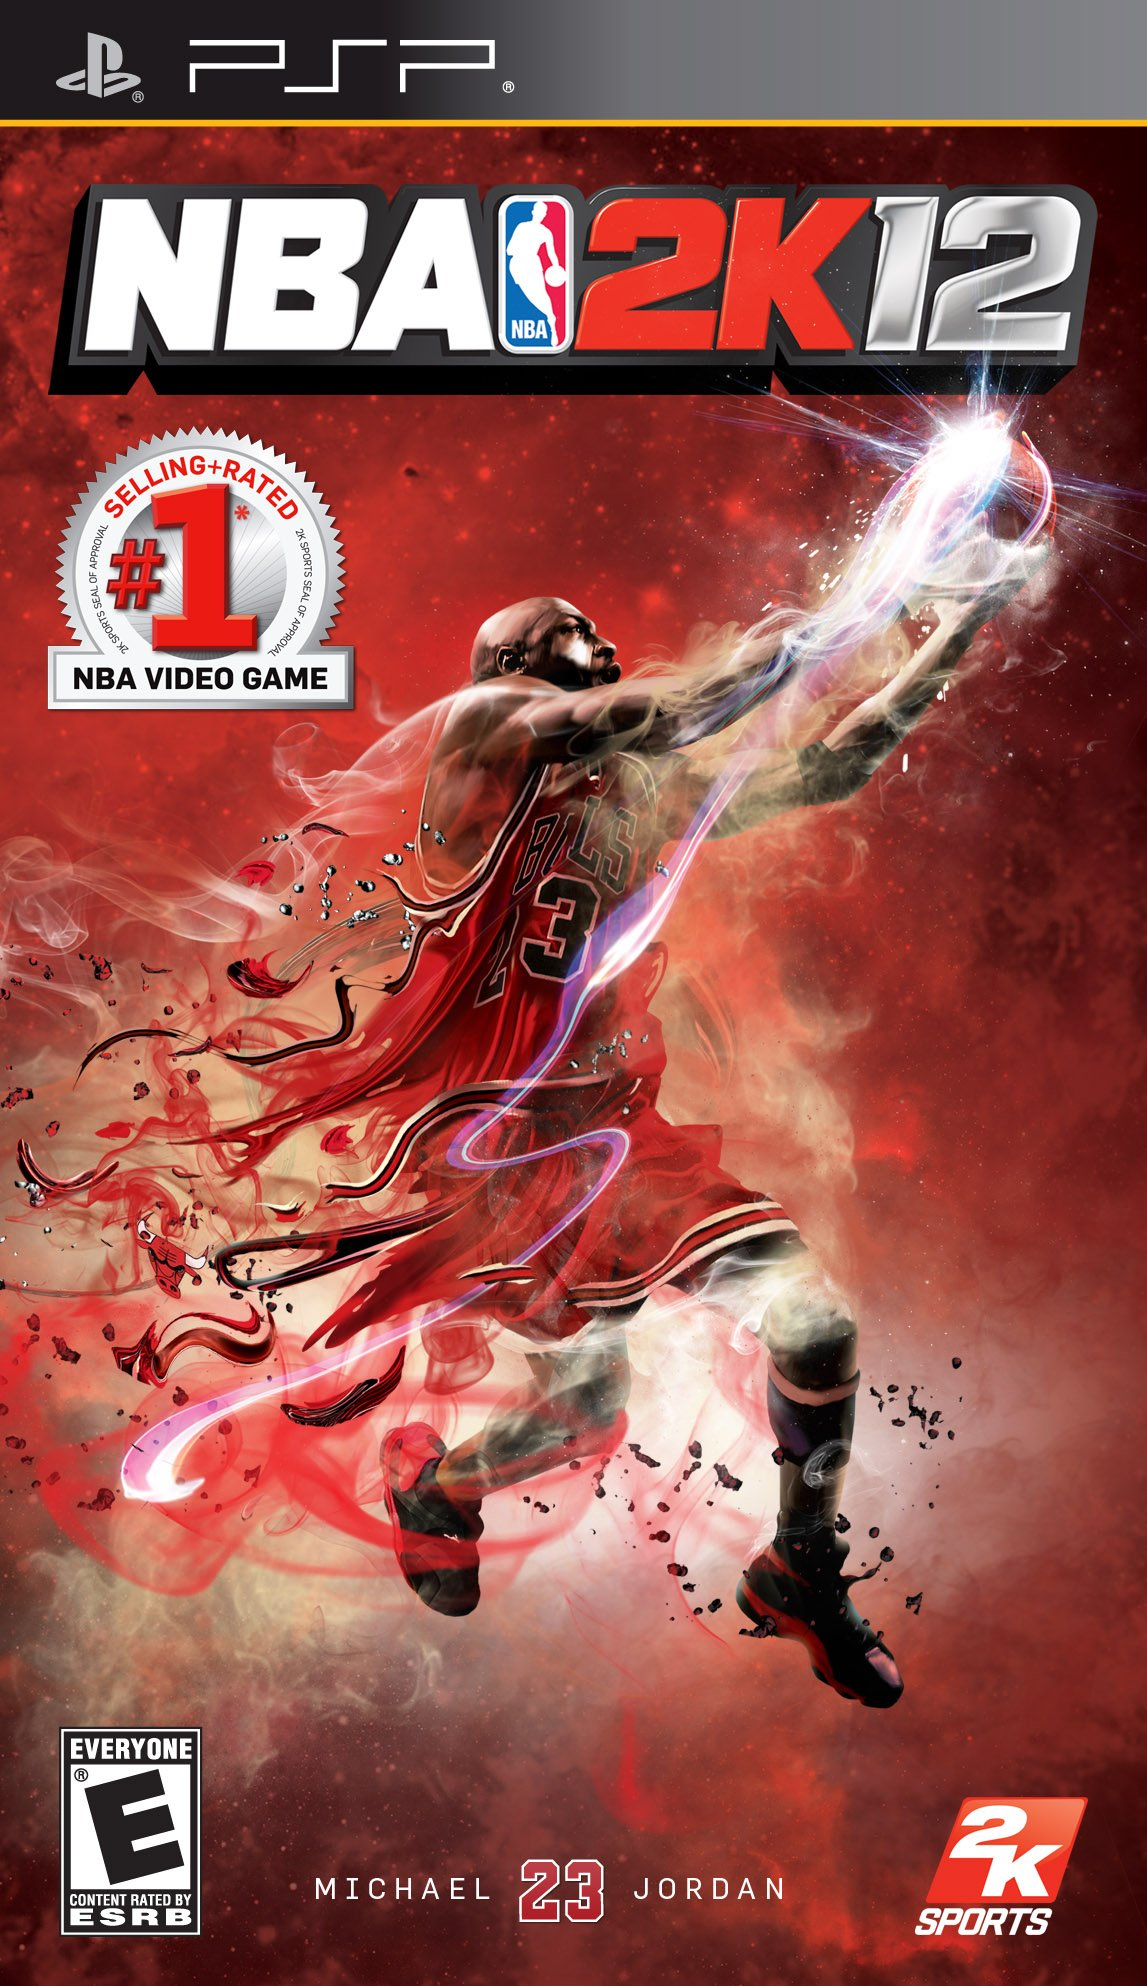 NBA 2K12 Release Date (Xbox 360, PS3, PC, Wii, PSP)